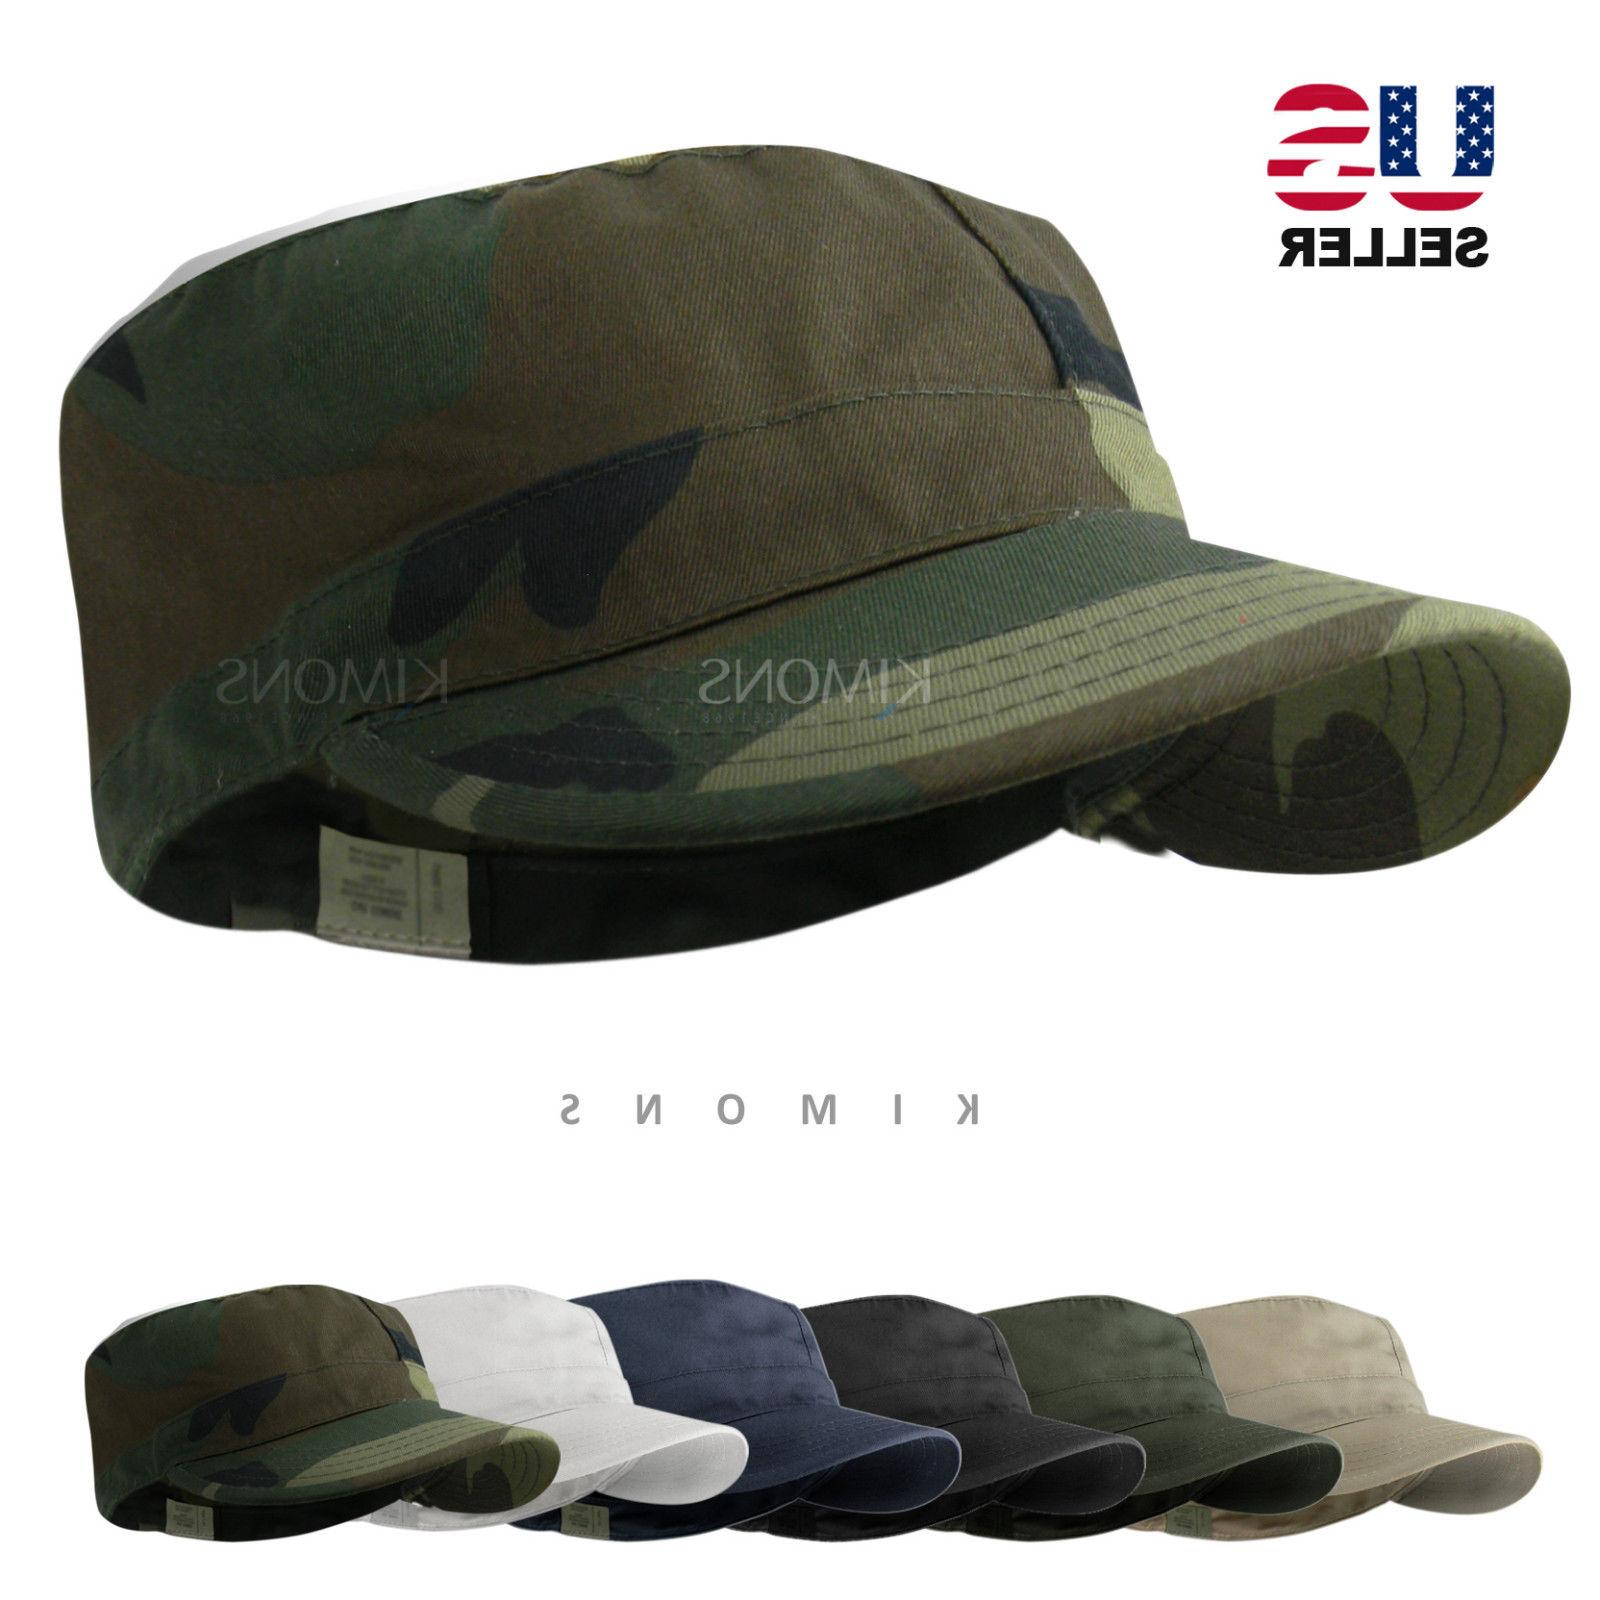 bdu fitted army cadet military patrol castro